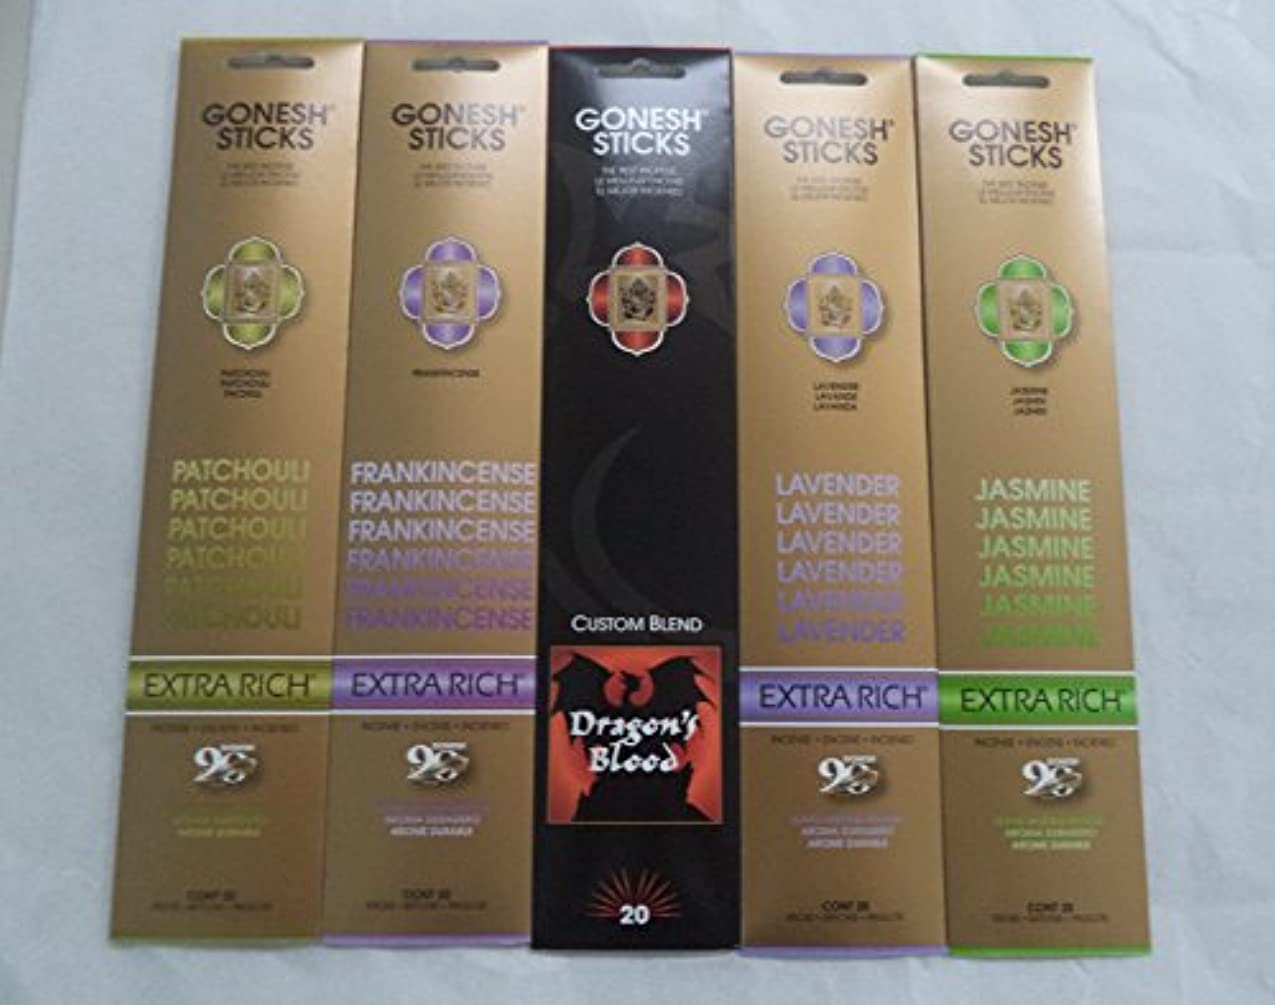 ラブ政治家シリアルGonesh Incense Stick Best SellerコンボVariety Set # 1 5 x 20 = 100 Sticks